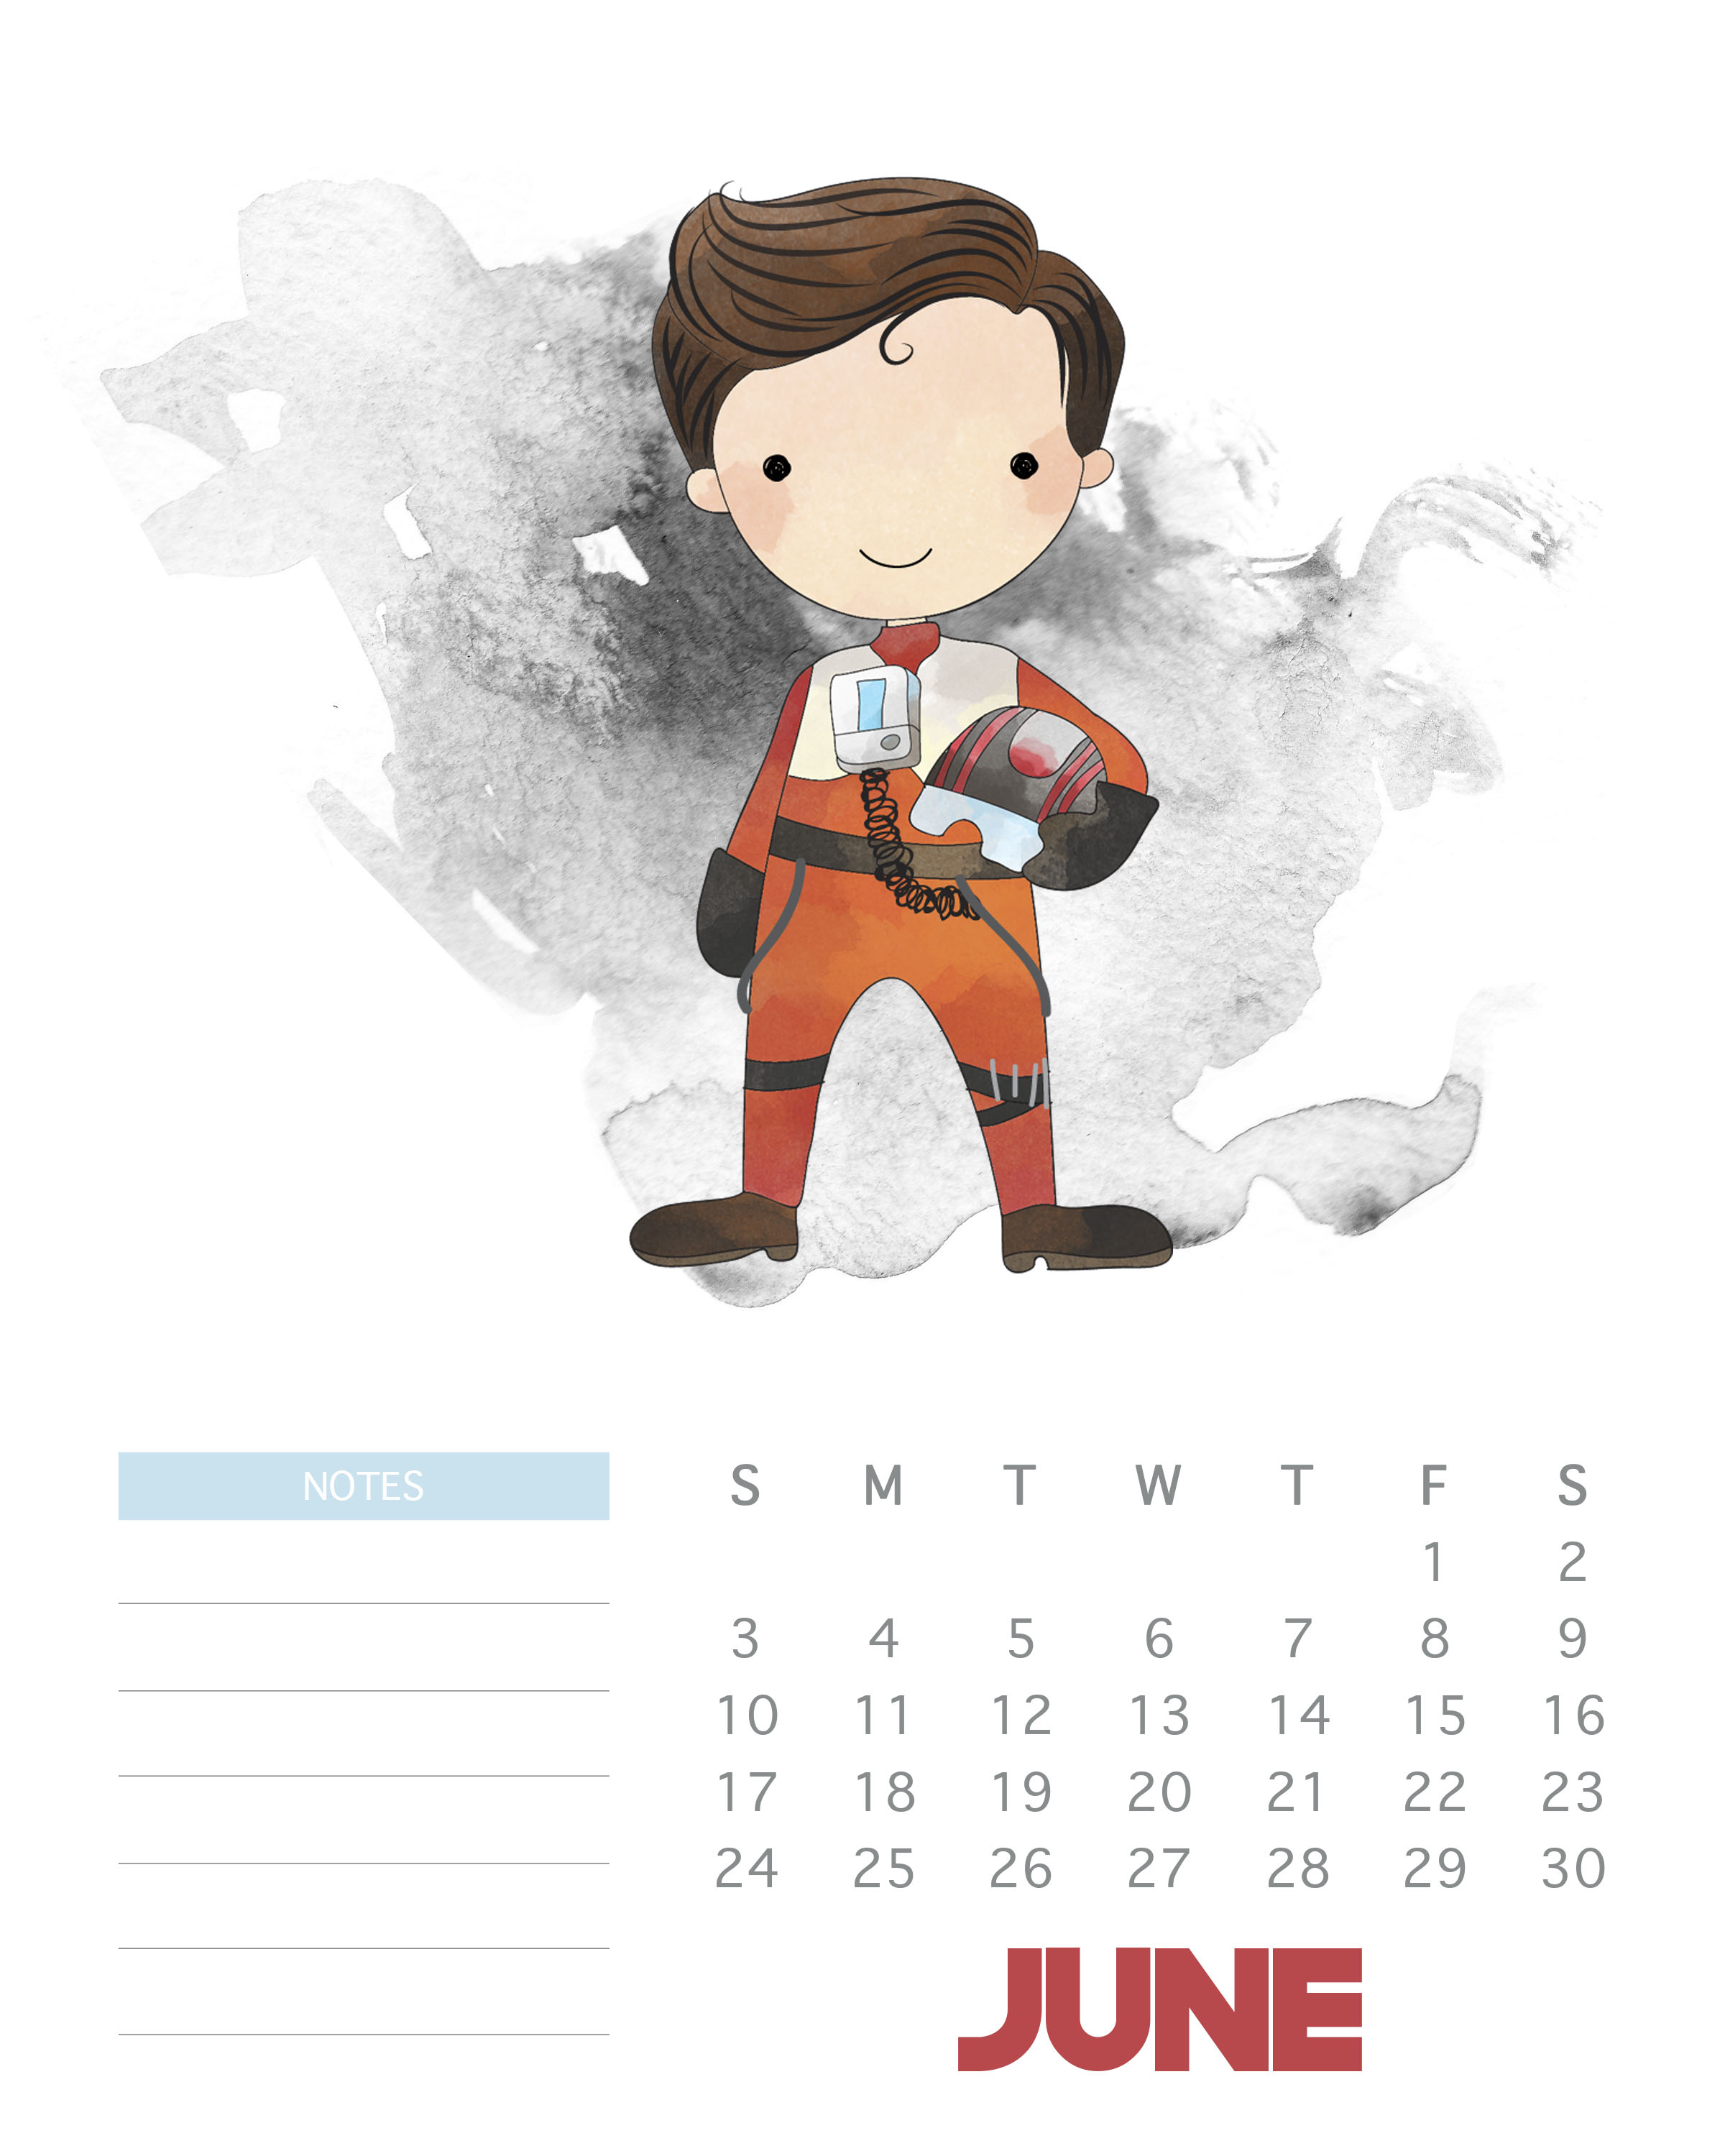 June 2018 Star Wars Calendar, Formal calendar June 2018